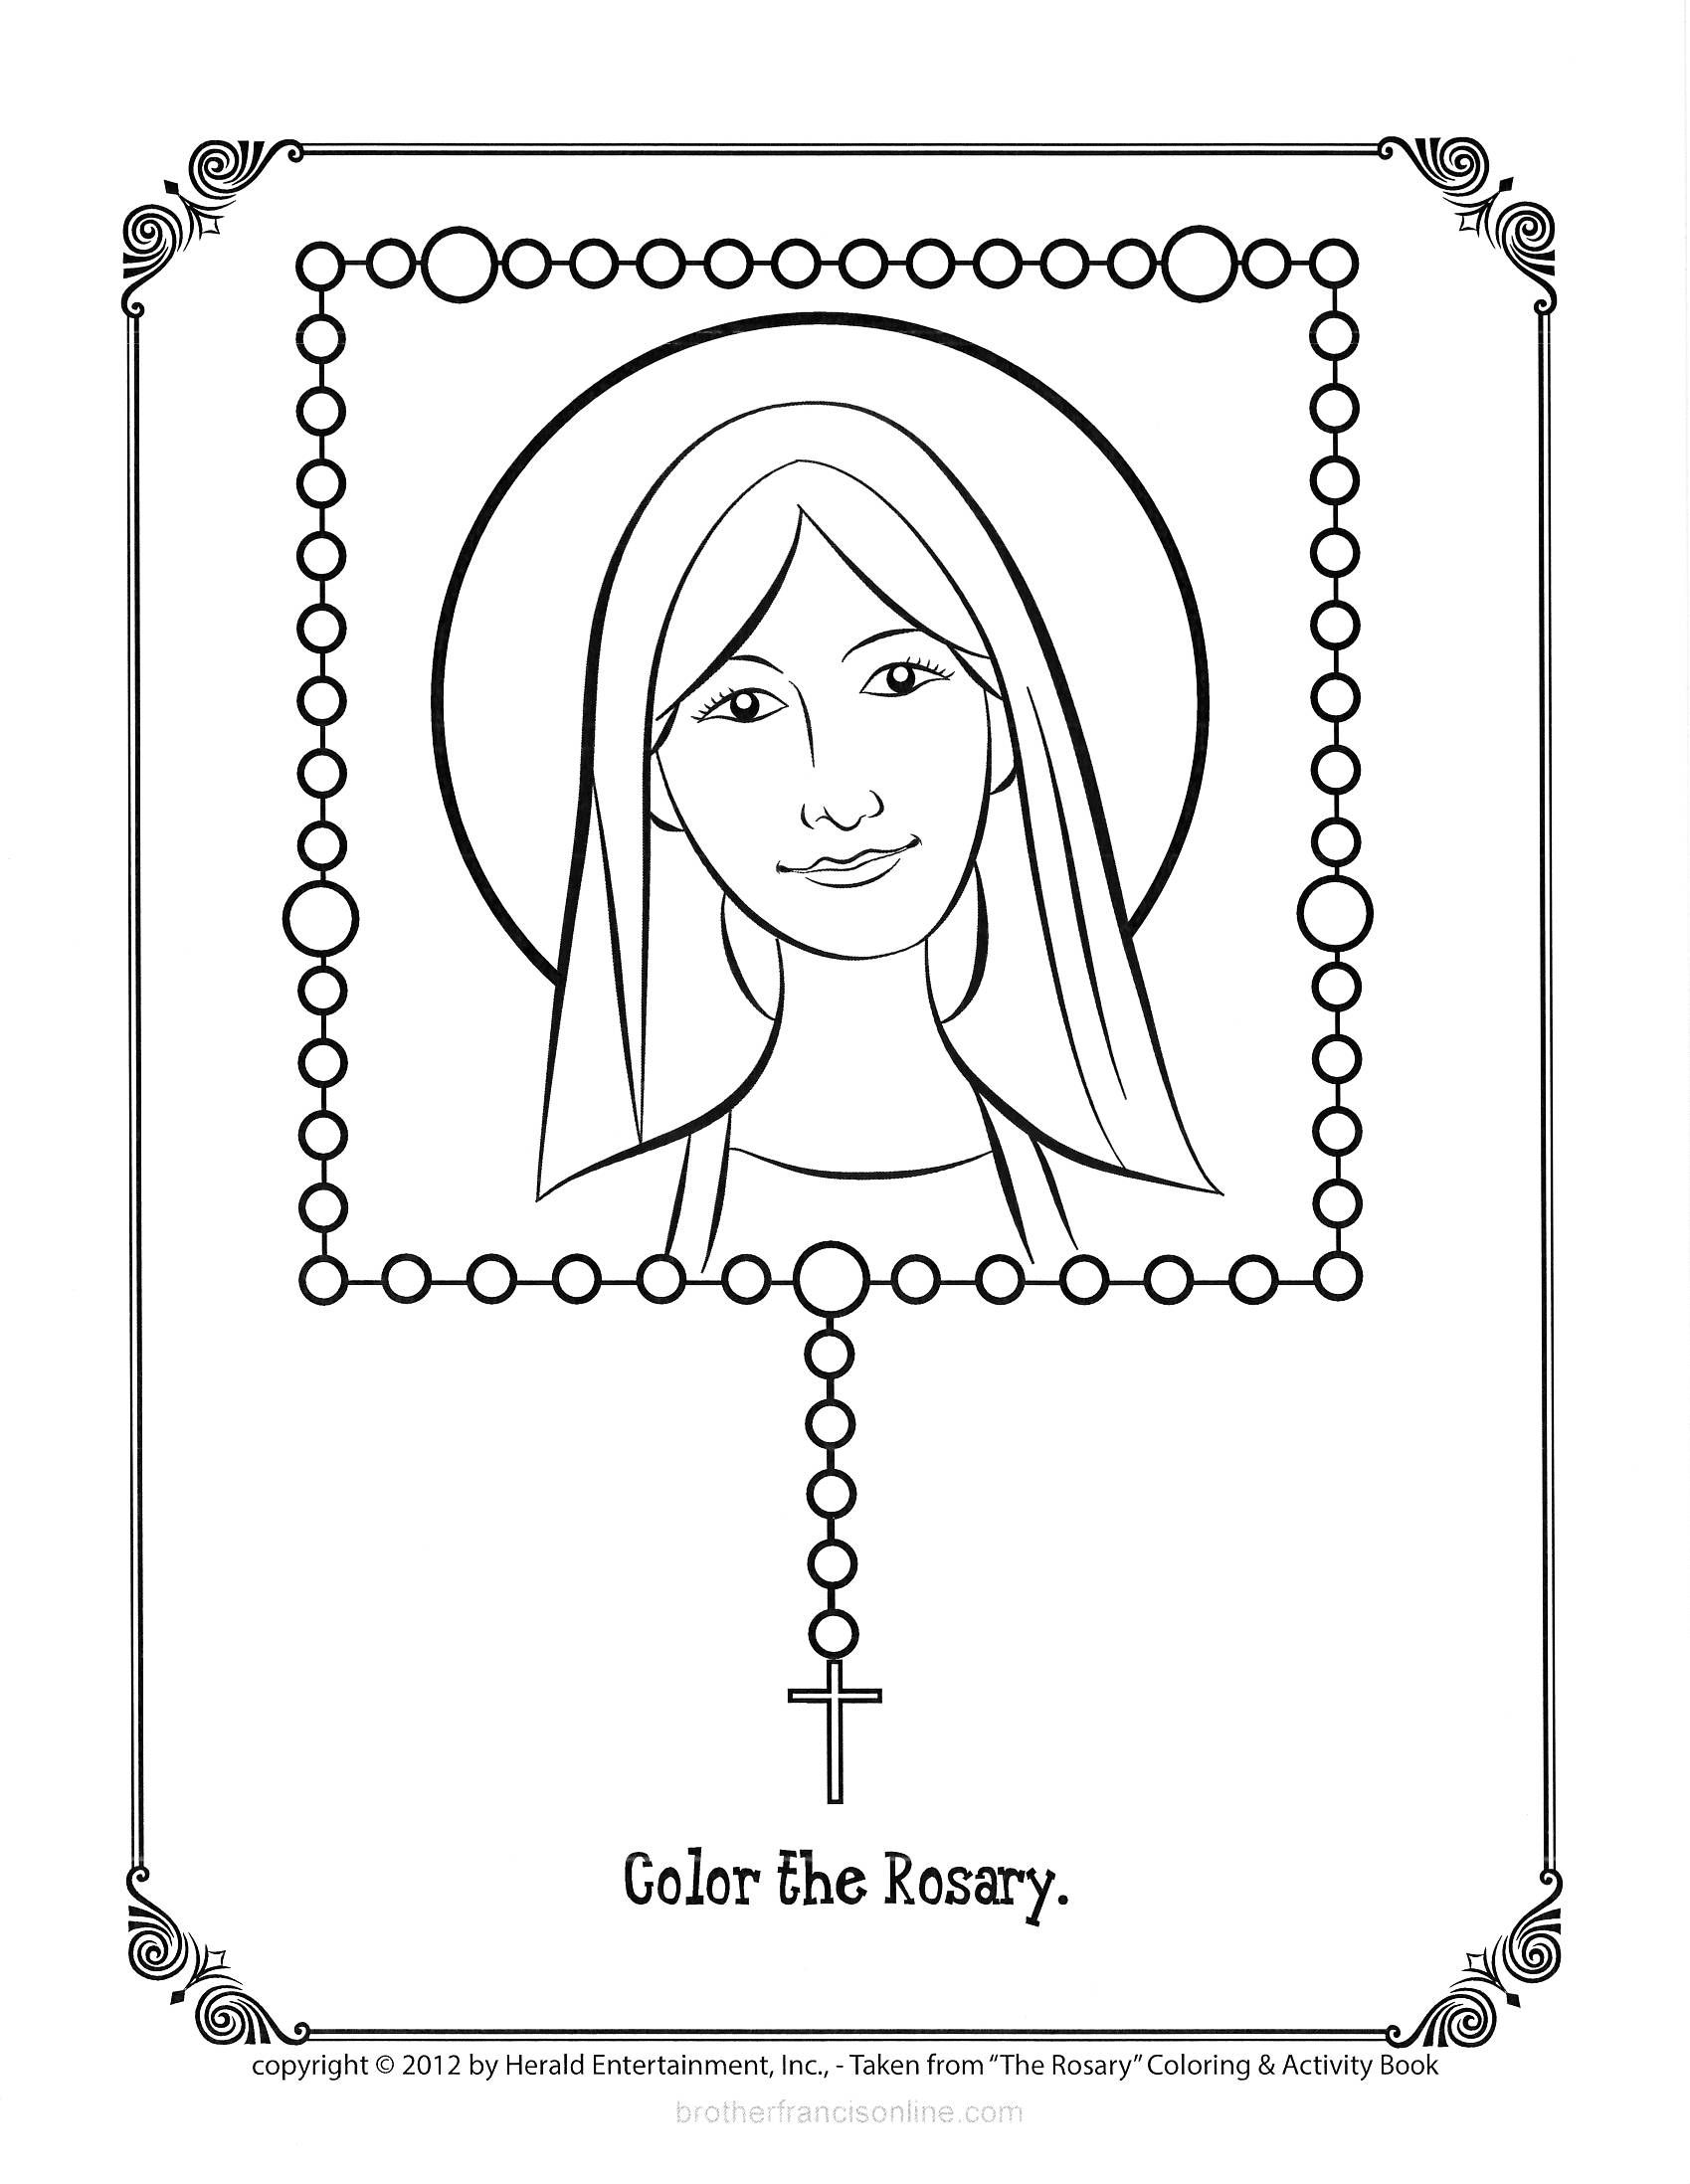 childrens rosary coloring pages | Rosary Coloring Page Printable Home Sketch Coloring Page